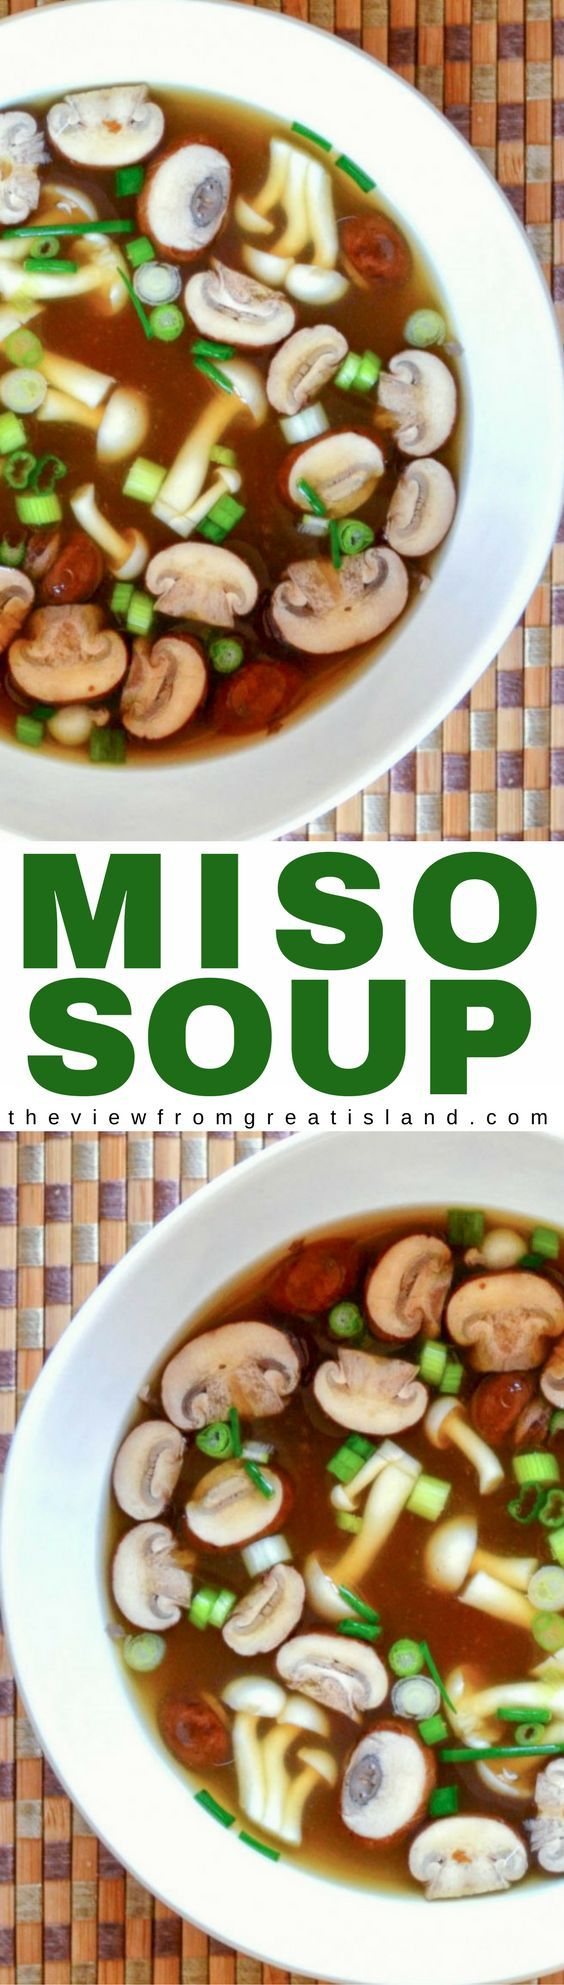 Miso Soup is the original health food, it's been nourishing the Japanese for centuries, and you can make it yourself in minutes. I would leave out the tofu!